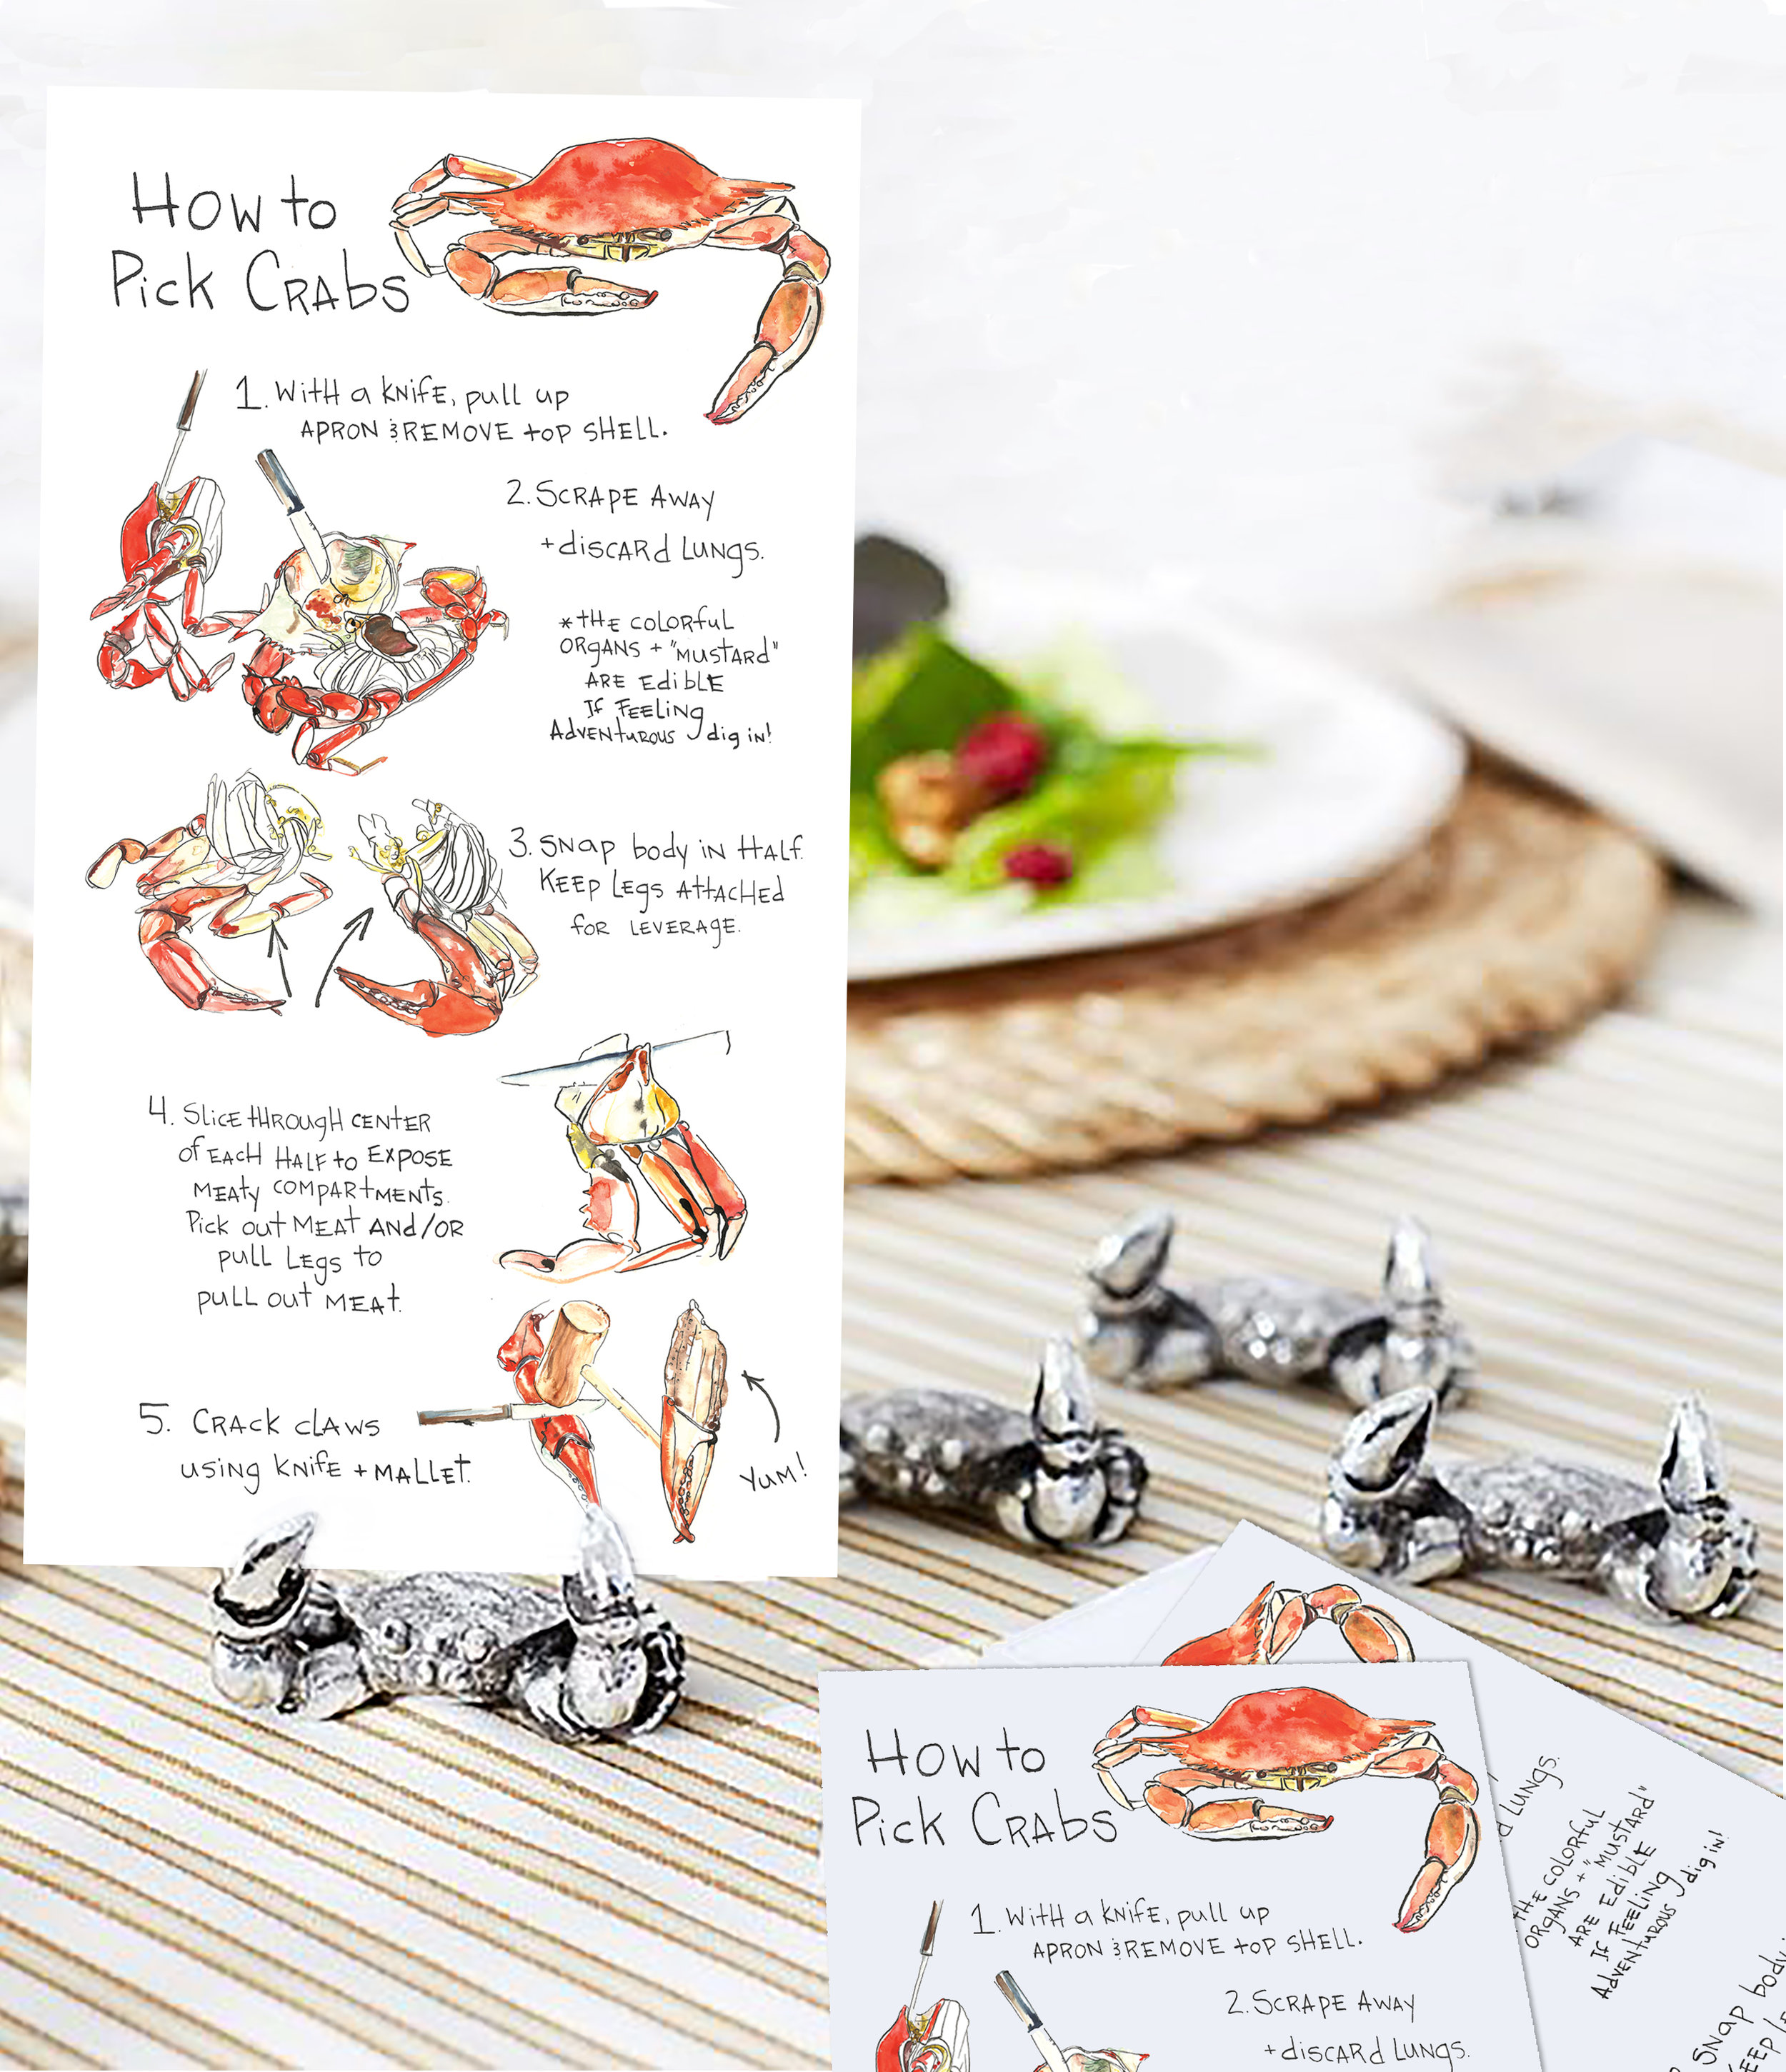 Found these adorable pewter crab place card holders by Pottery Barn over on Pinterest. Perfect match!